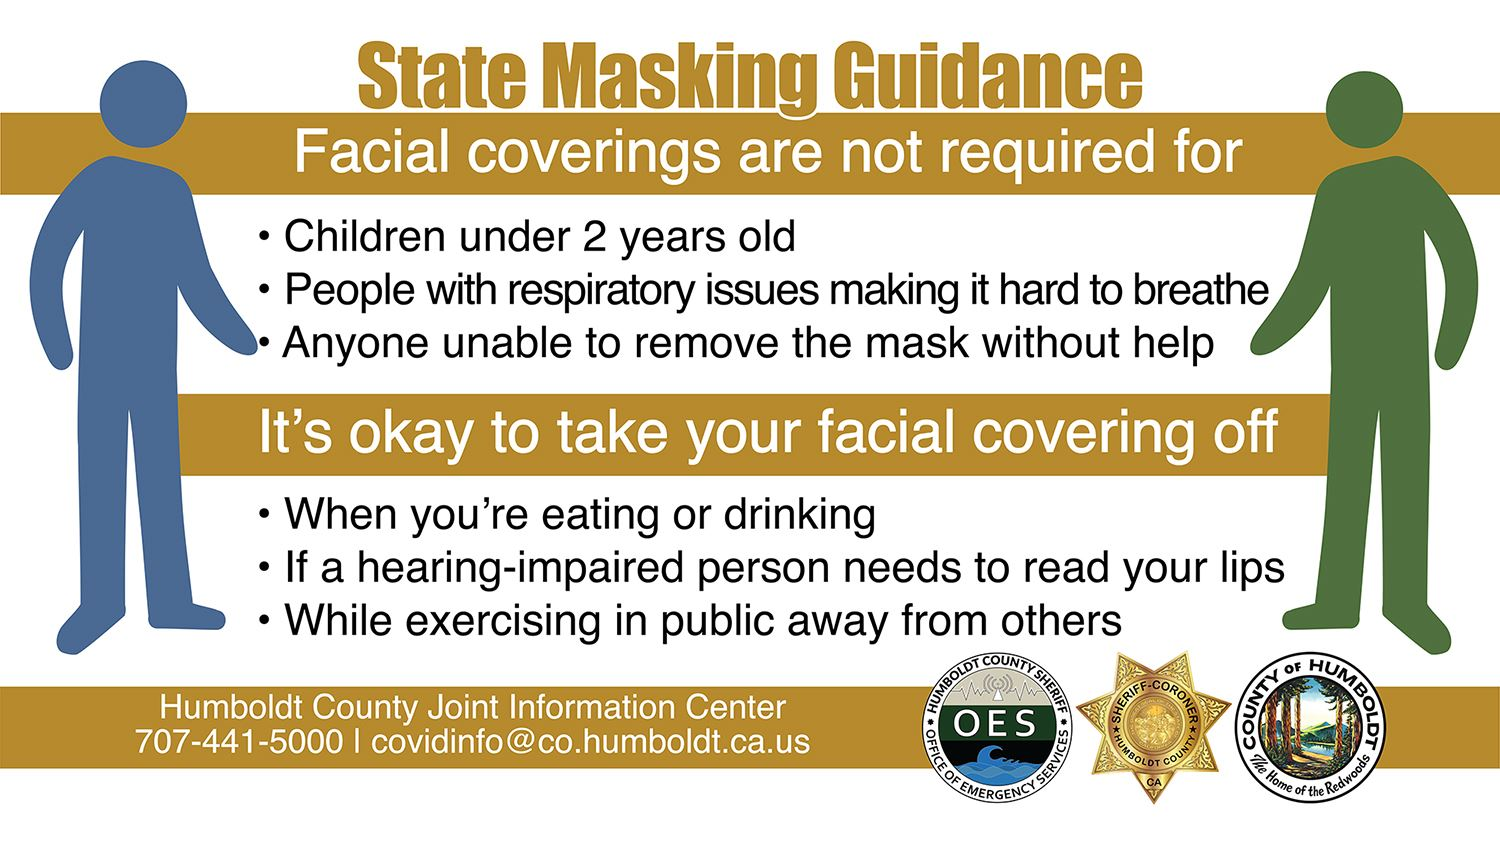 State guidance states facial coverings are not required for: children under 2, people with respiratory issues, anyone unable to remove mask without help.  It's okay to take off facial coverings to eat/drink, if a hearing-impaired person needs to read your lips, and while exercising away from others.